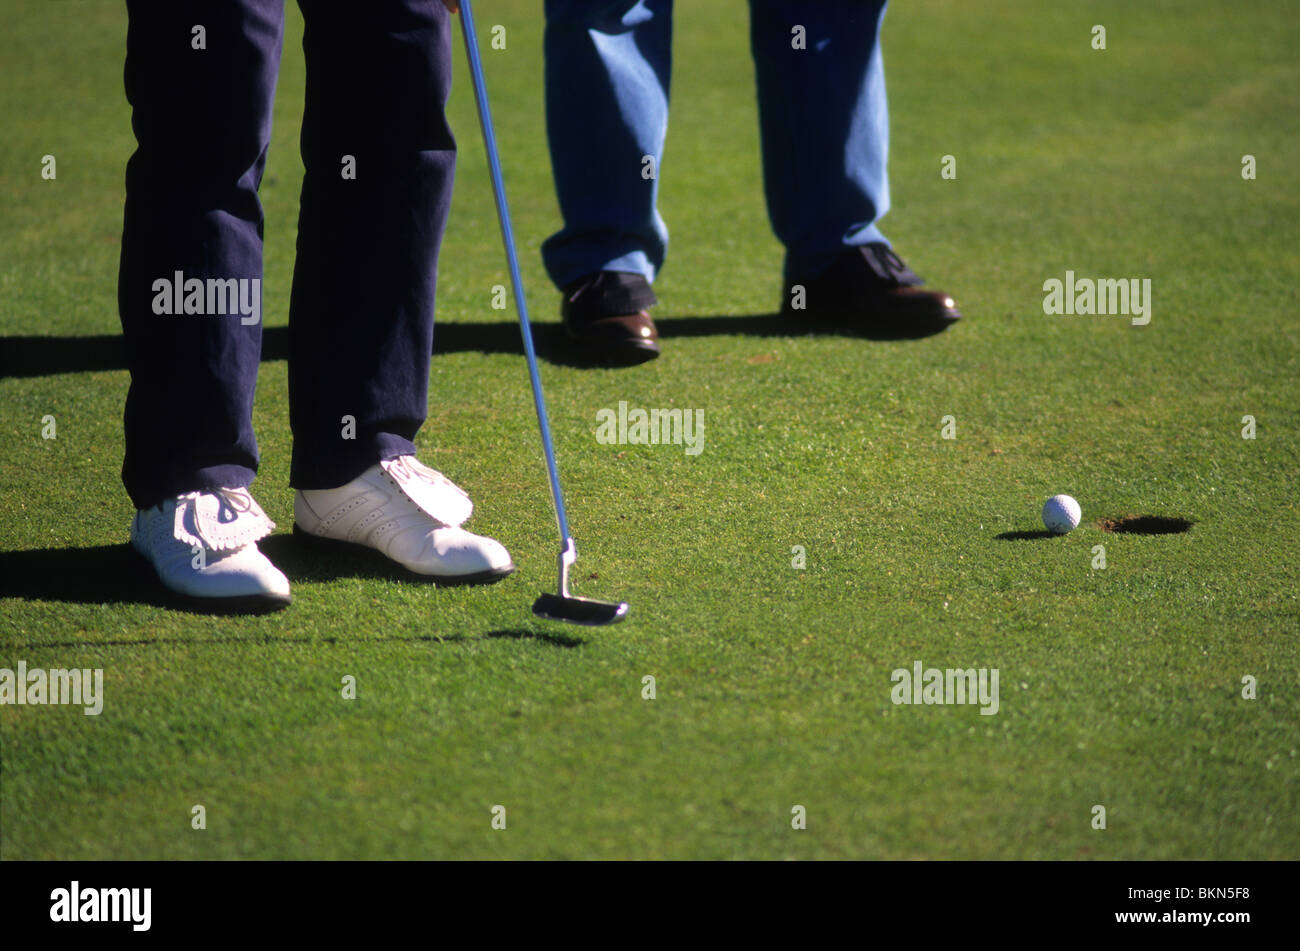 Two golfers putting golf ball into hole on a golf course. - Stock Image